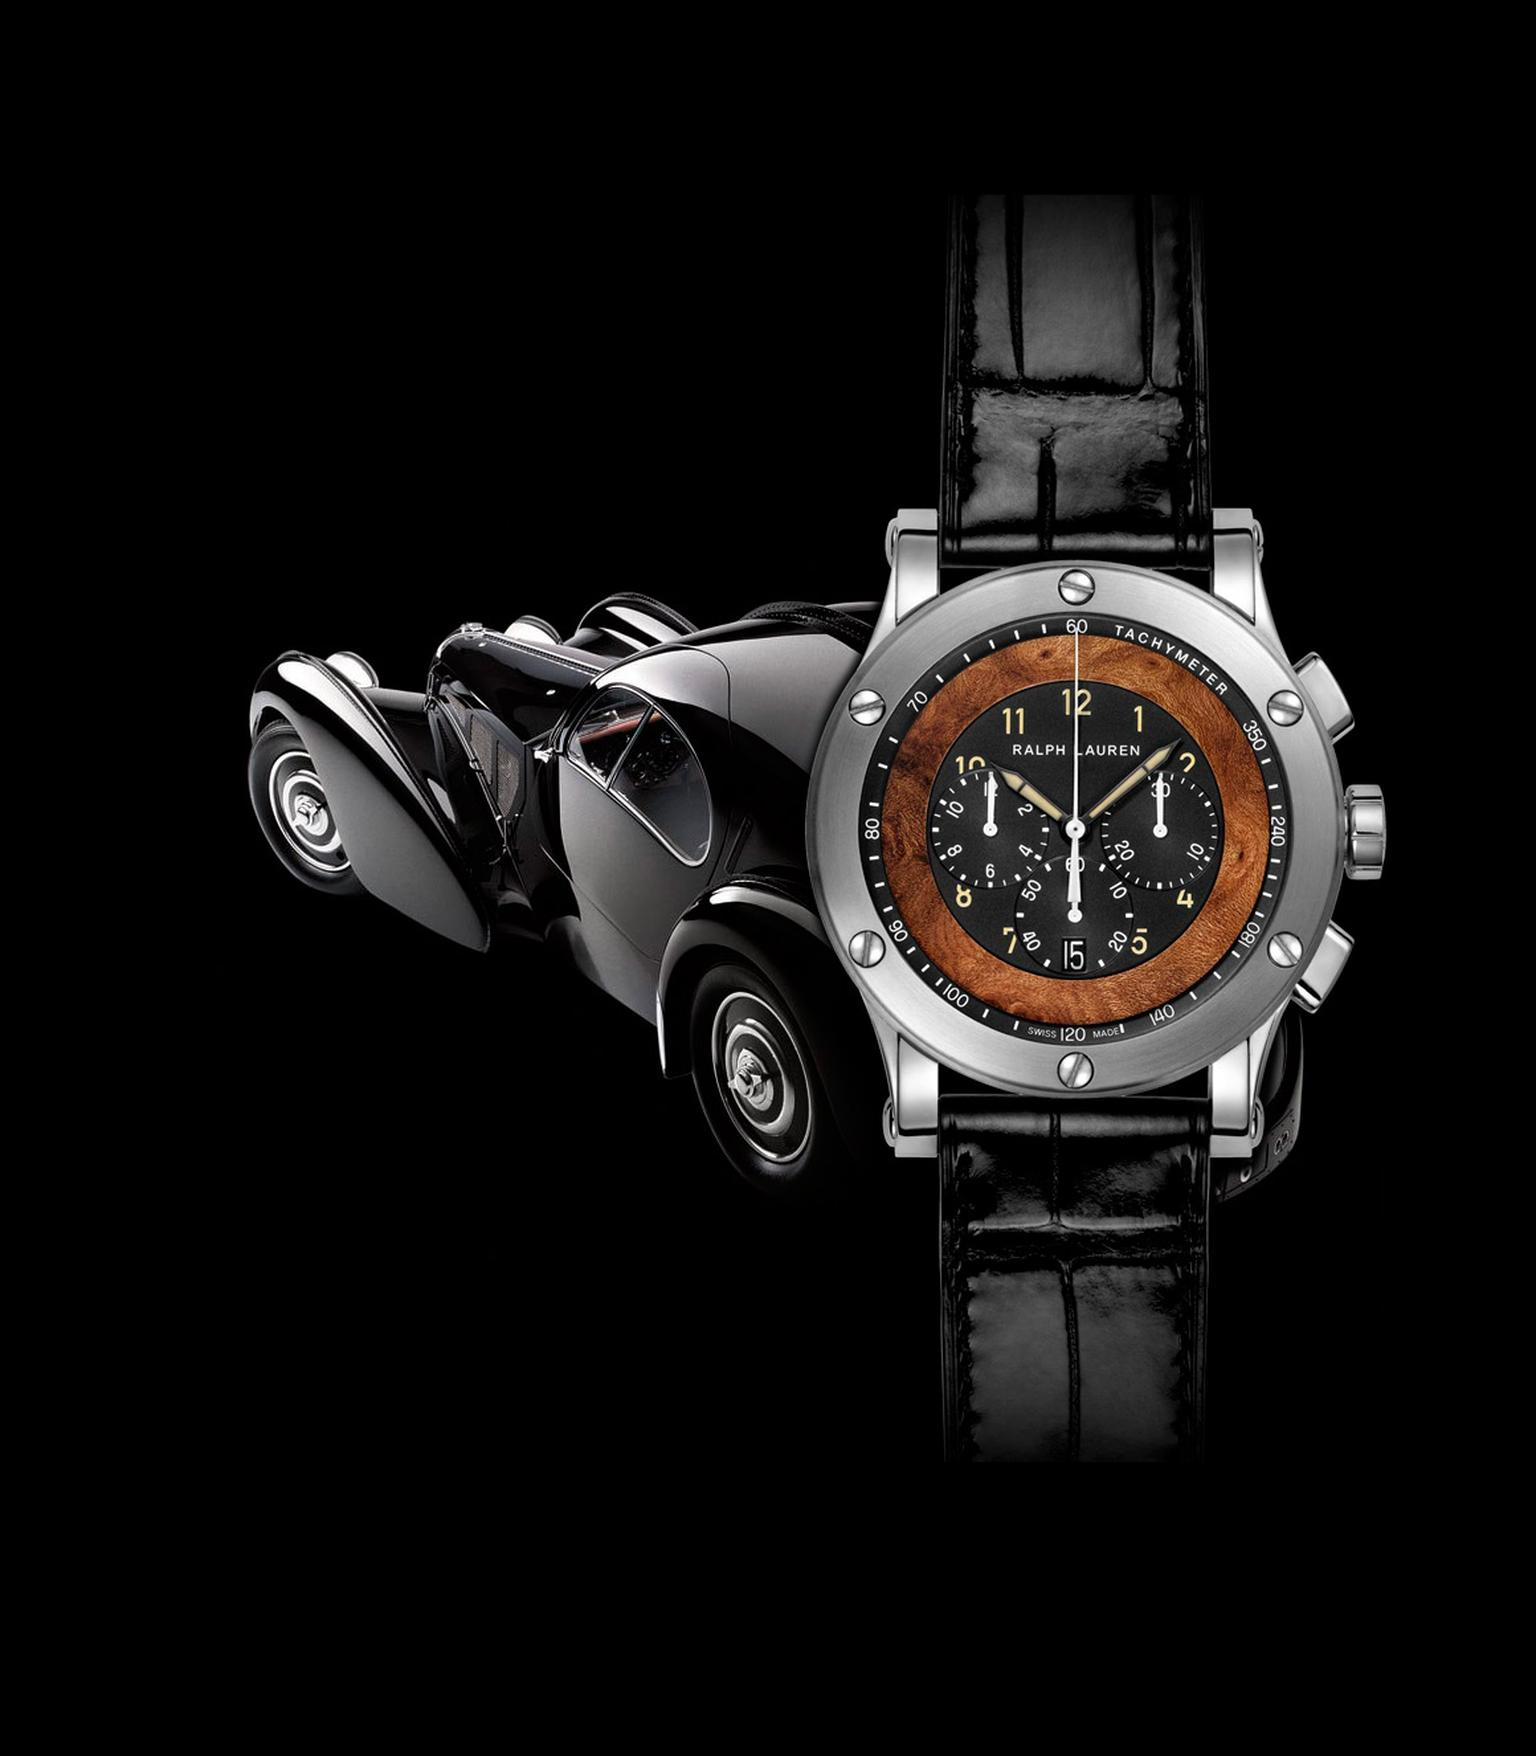 Ralph Lauren 45 mm Automotive Chronograph, inspired by Ralph Lauren's 1938 Bugatti Coupé